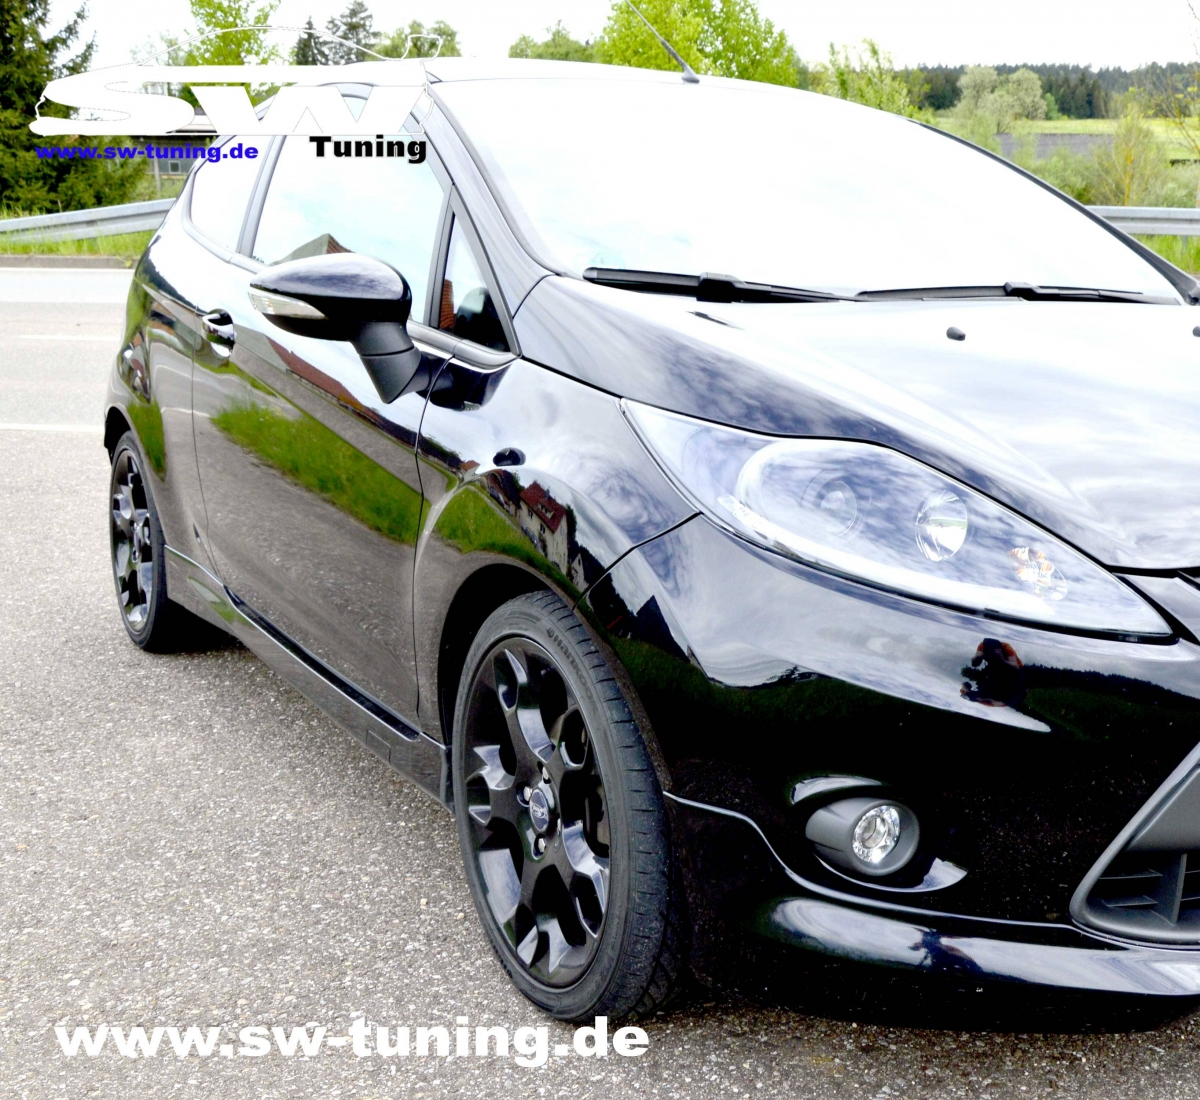 tdm seitenschweller sport look f r ford fiesta mk7 ja8 08 12 3t rer tuning online kaufen. Black Bedroom Furniture Sets. Home Design Ideas